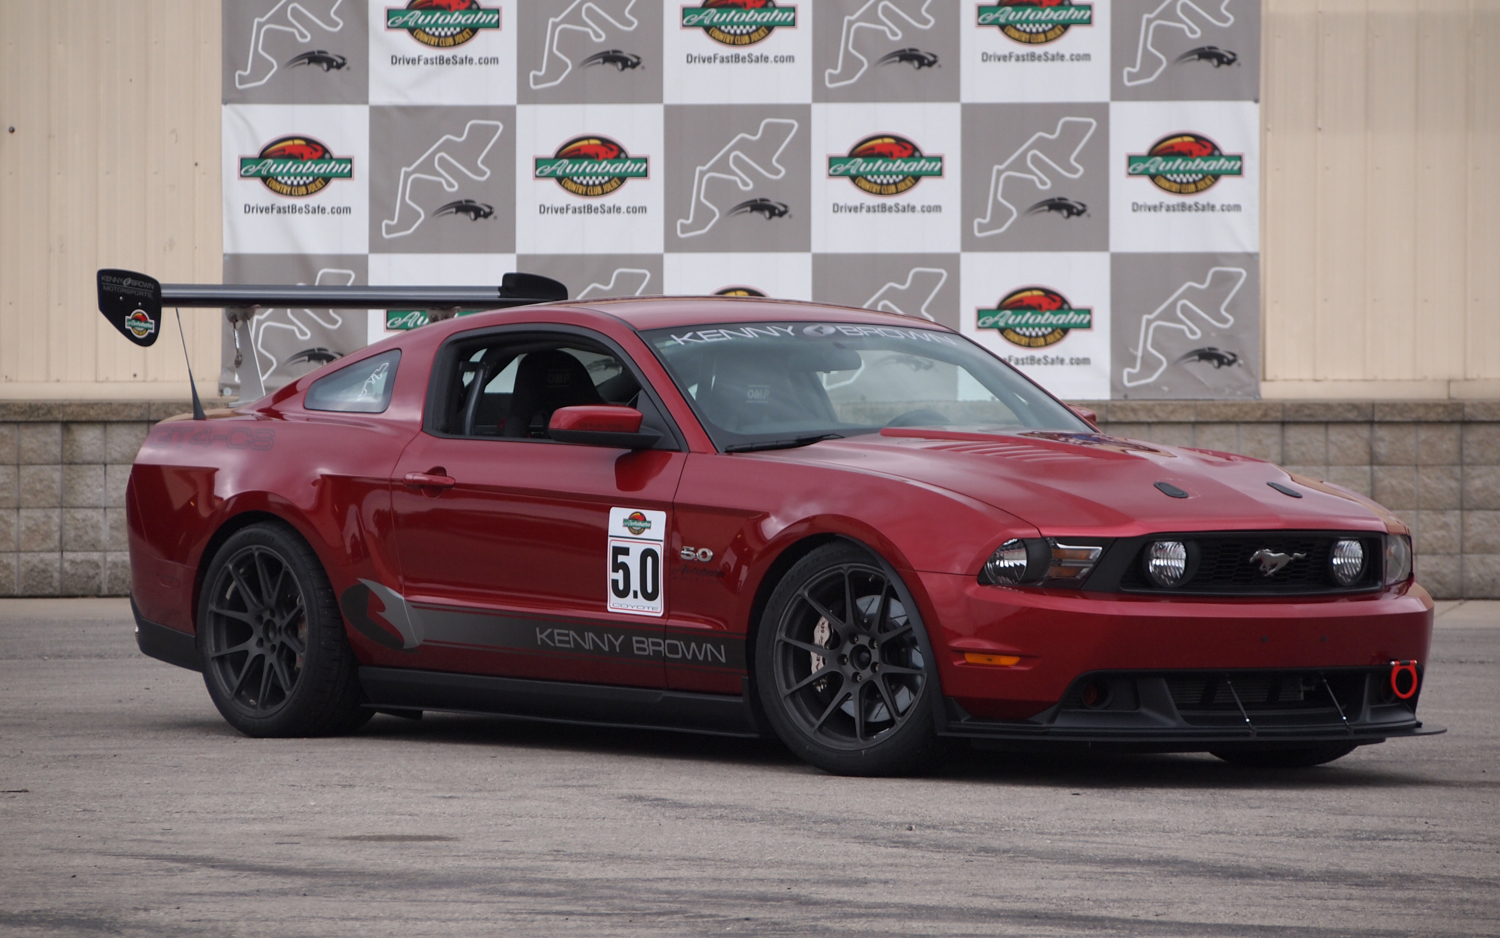 Kenny Brown Tuned Mustangs From Track Day Special To Porsche Gt3 Rs